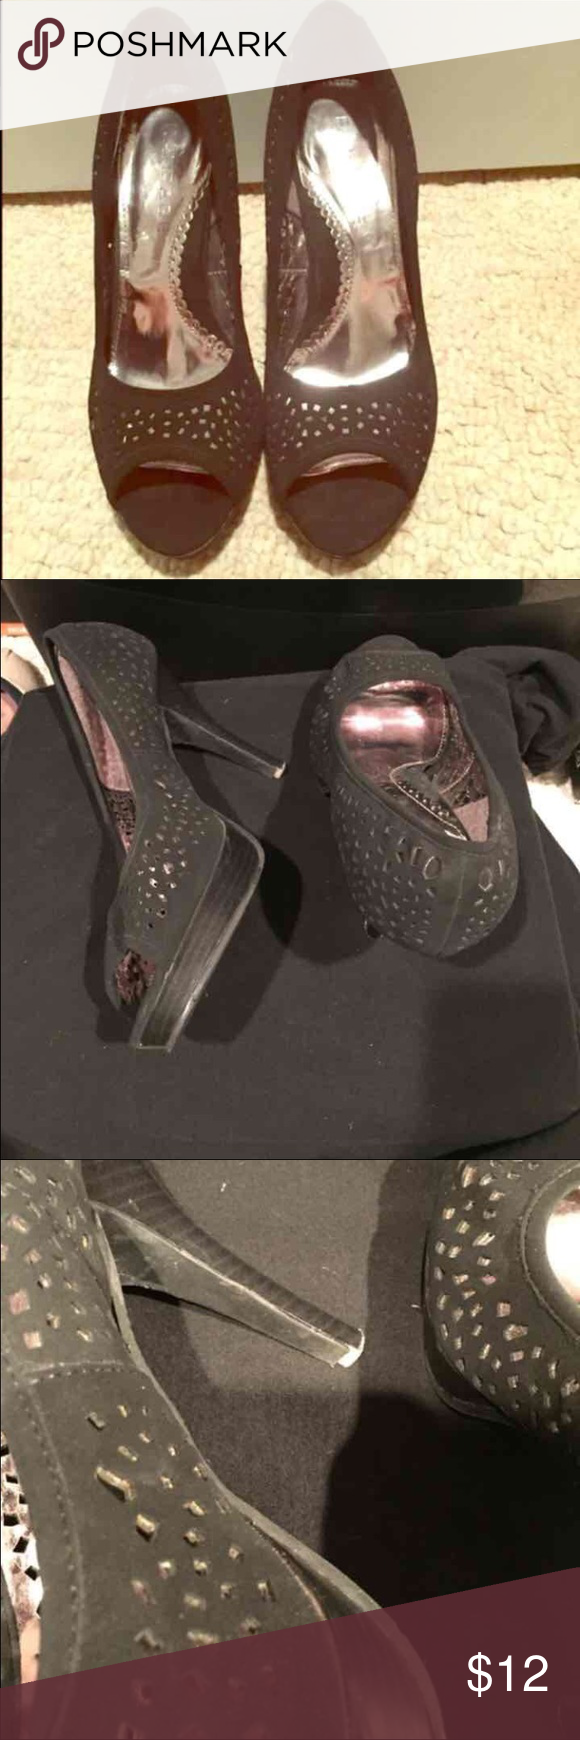 Rampage laser cut out black heels Worn a few times. One of the heels has a small piece missing on the inner heel that isn't noticeable when on. Comfortable and great with any outfit! Size 10. Rampage Shoes Heels